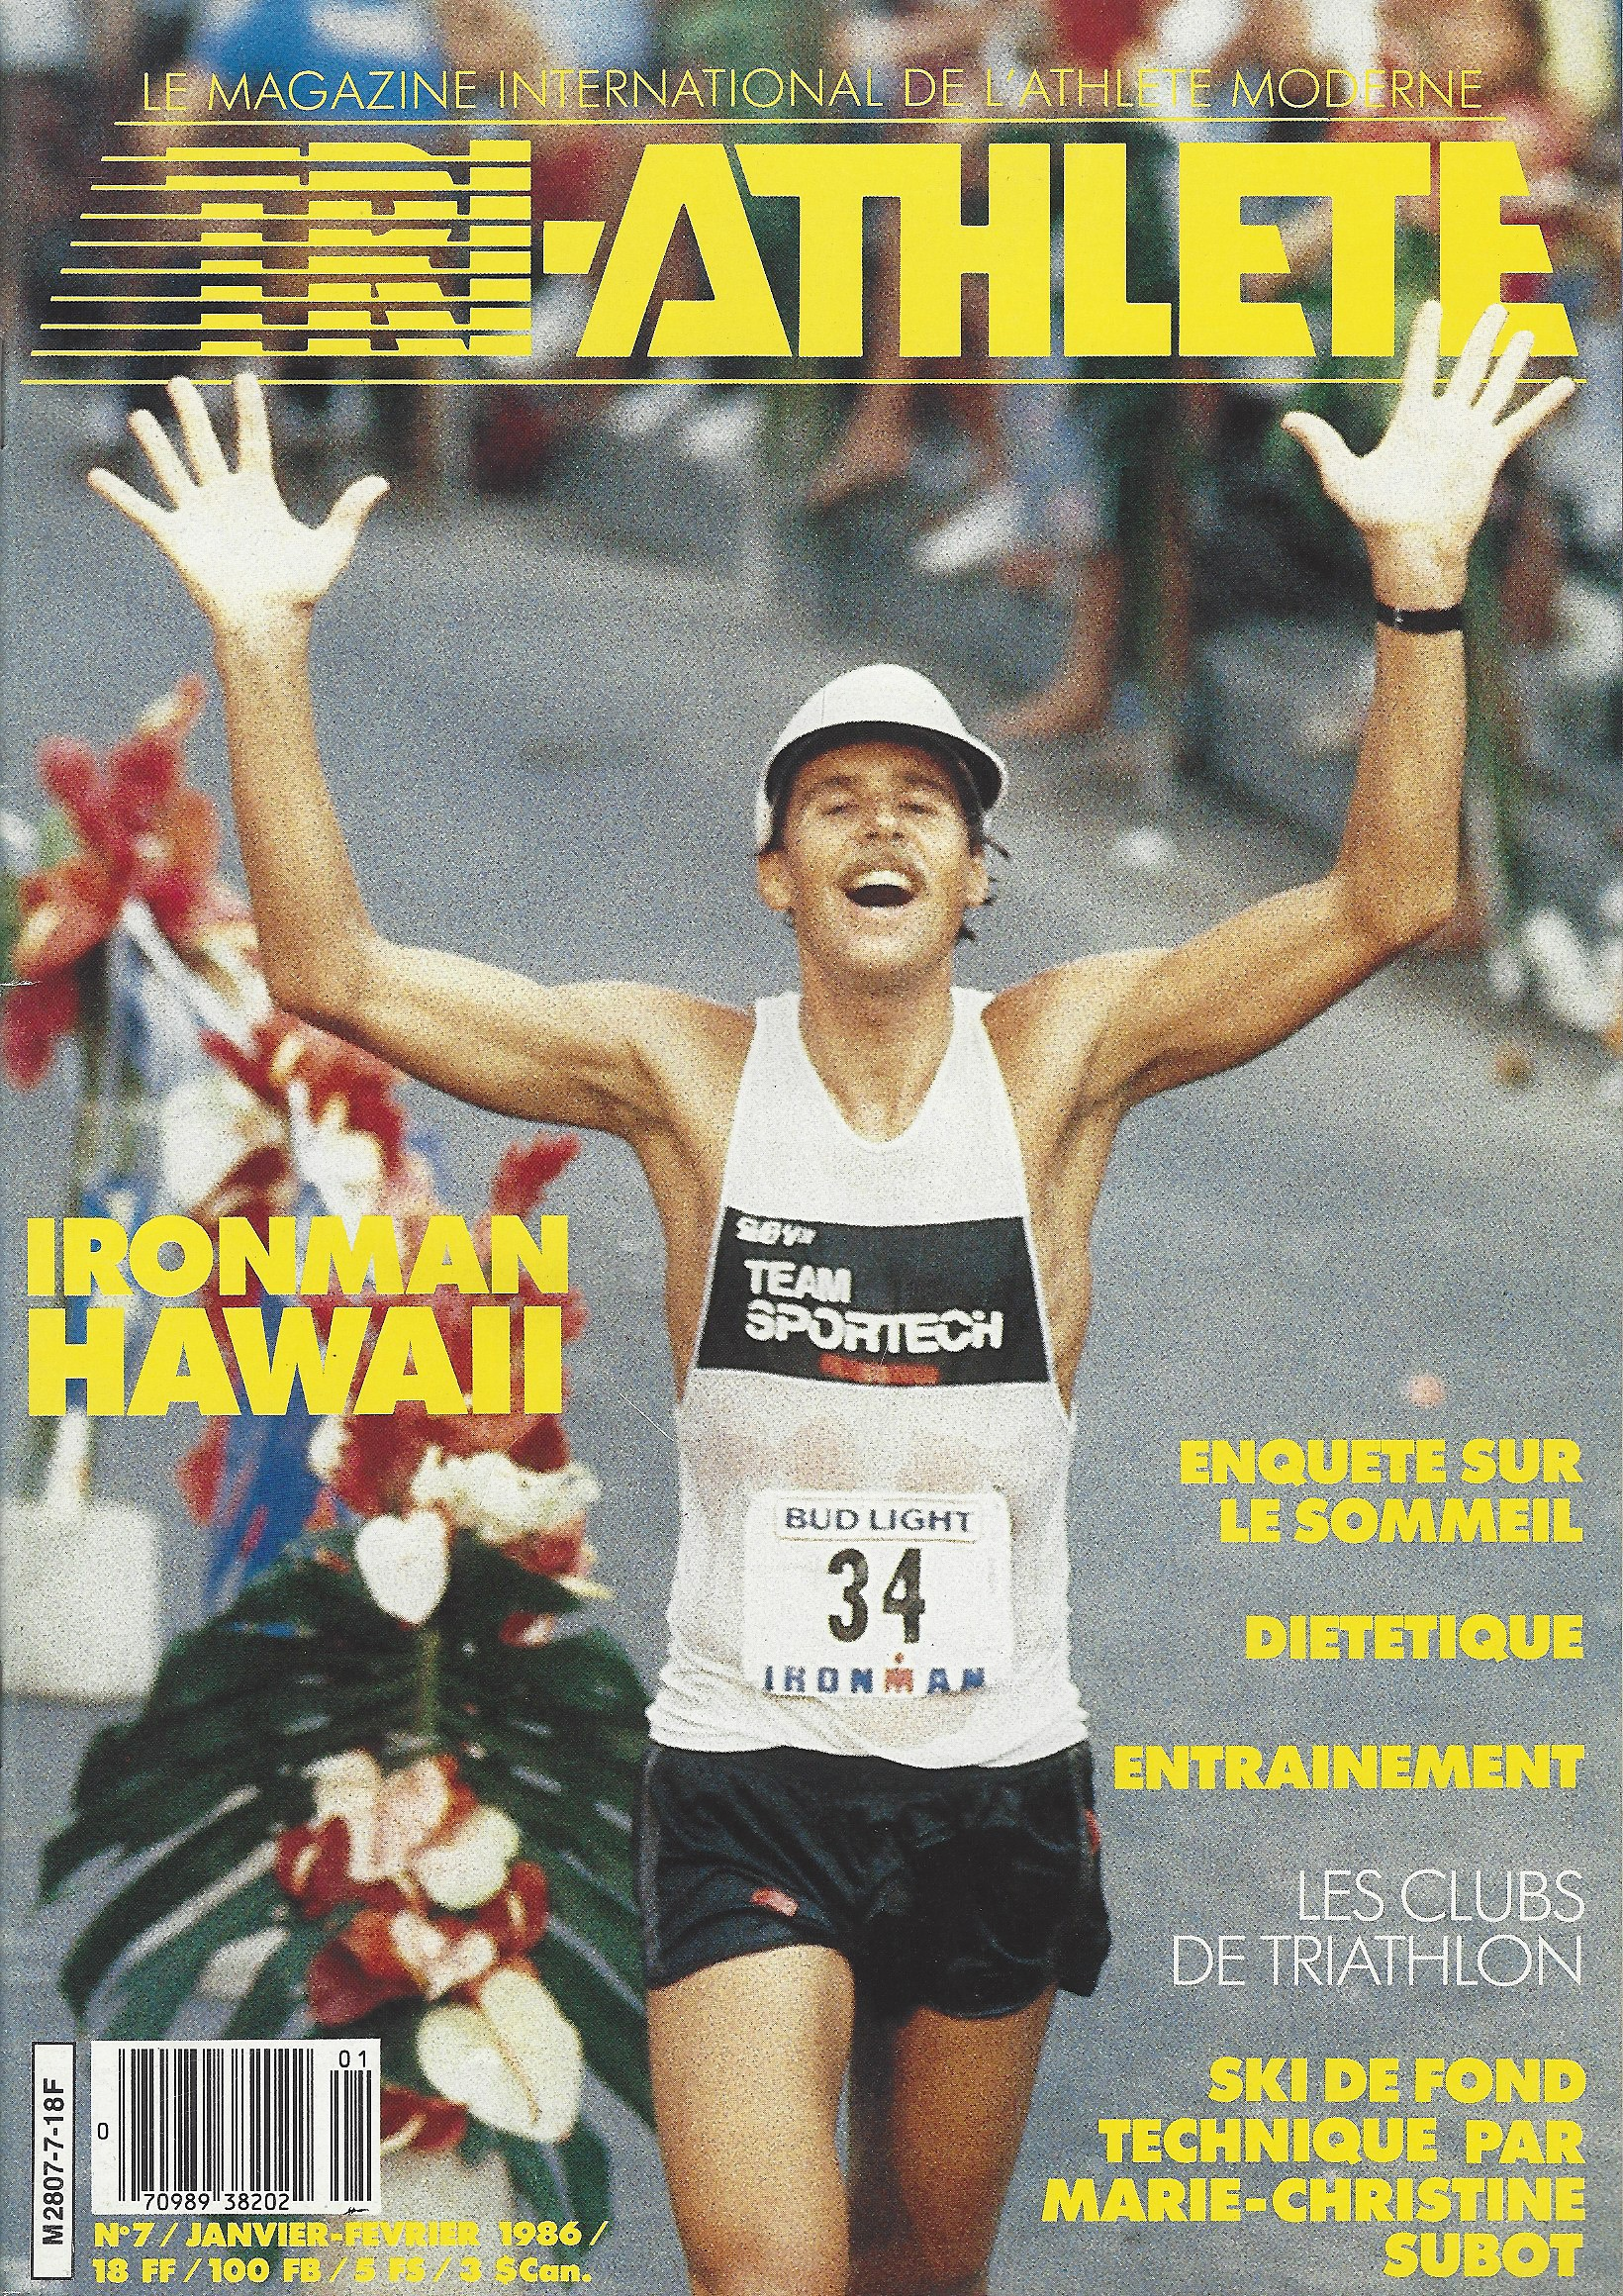 Couverture Triathlete Magazine Janvier 1986